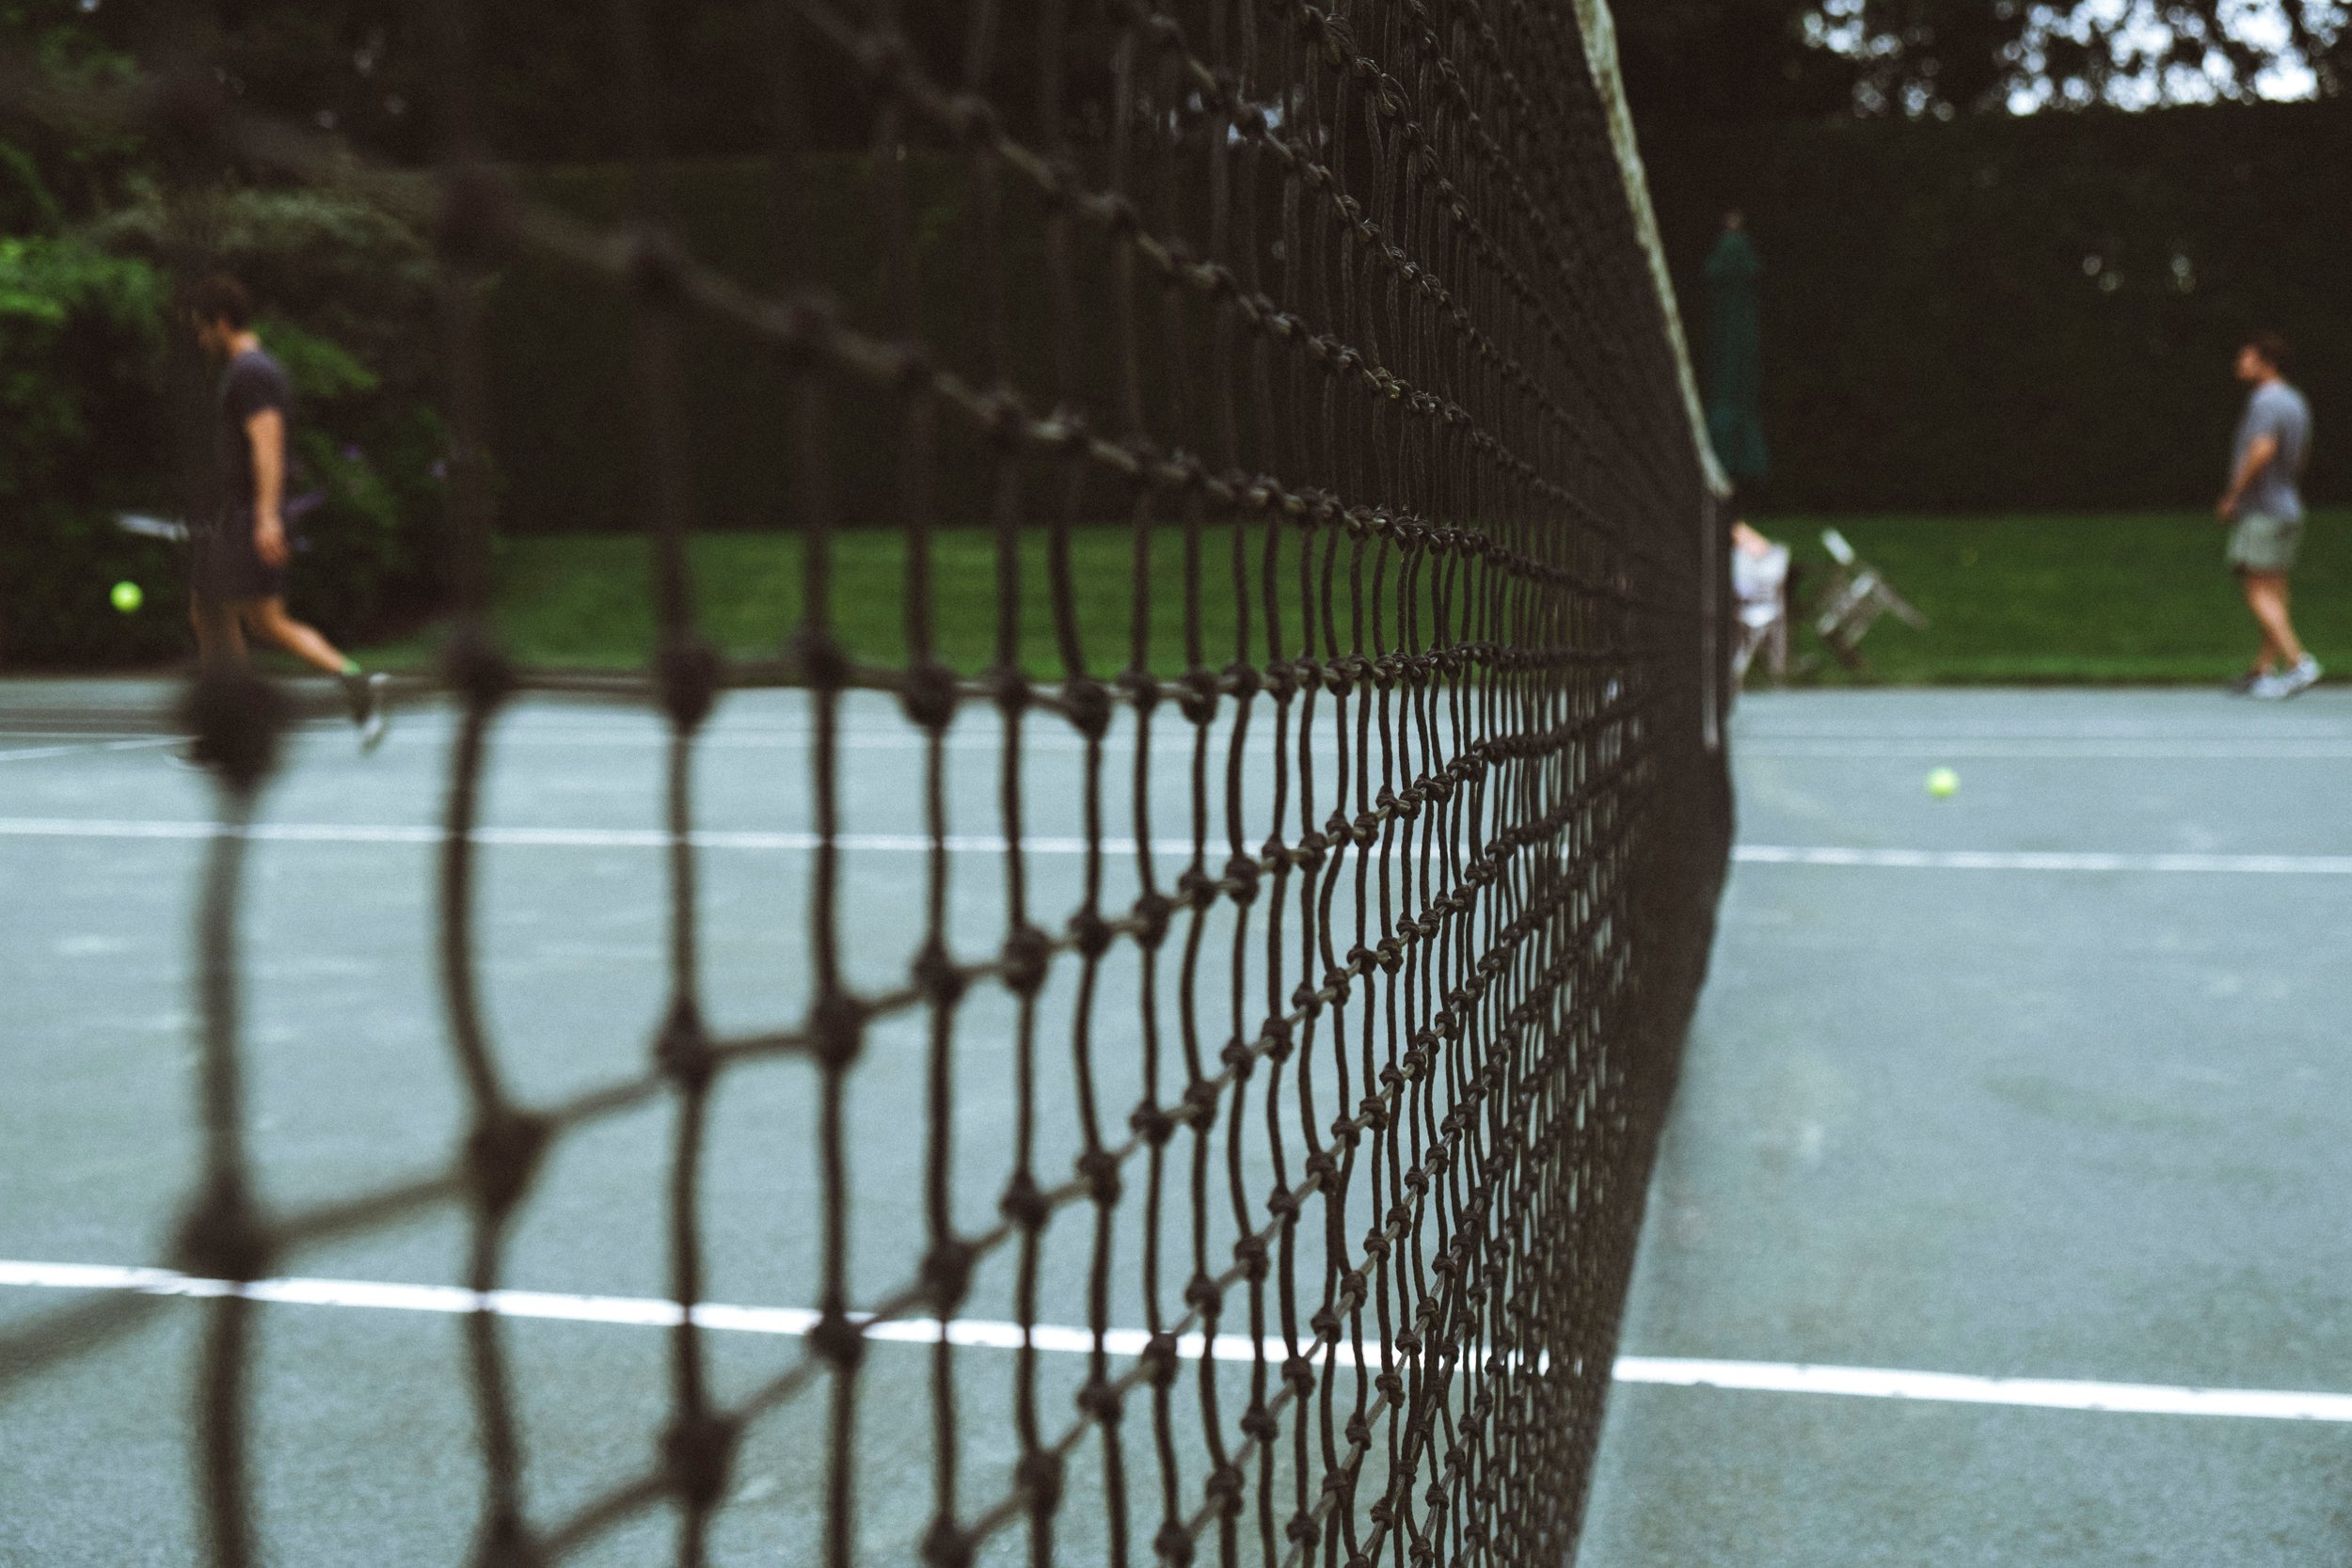 Tennis - Grab a racket from the Inn and head down the road to the Great Chebeague Tennis Club. The courts are clay, so be sure to bring proper shoes. Courts can be rented by the hour, and you can also sign up for weekly scrambles.